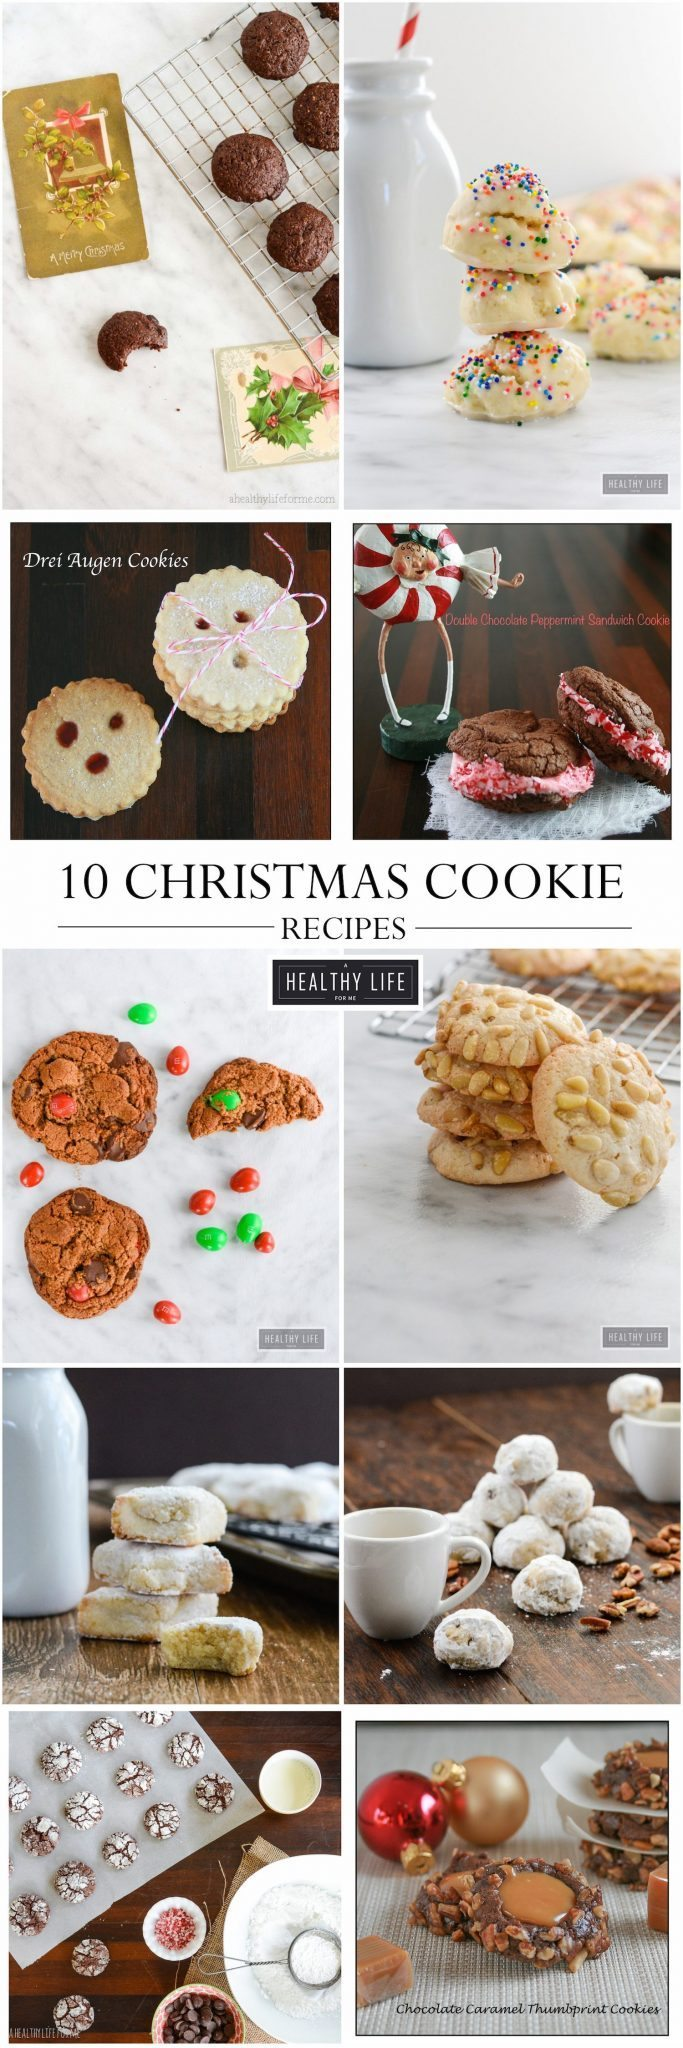 10 Christmas Cookie Recipes | ahealthylifeforme.com